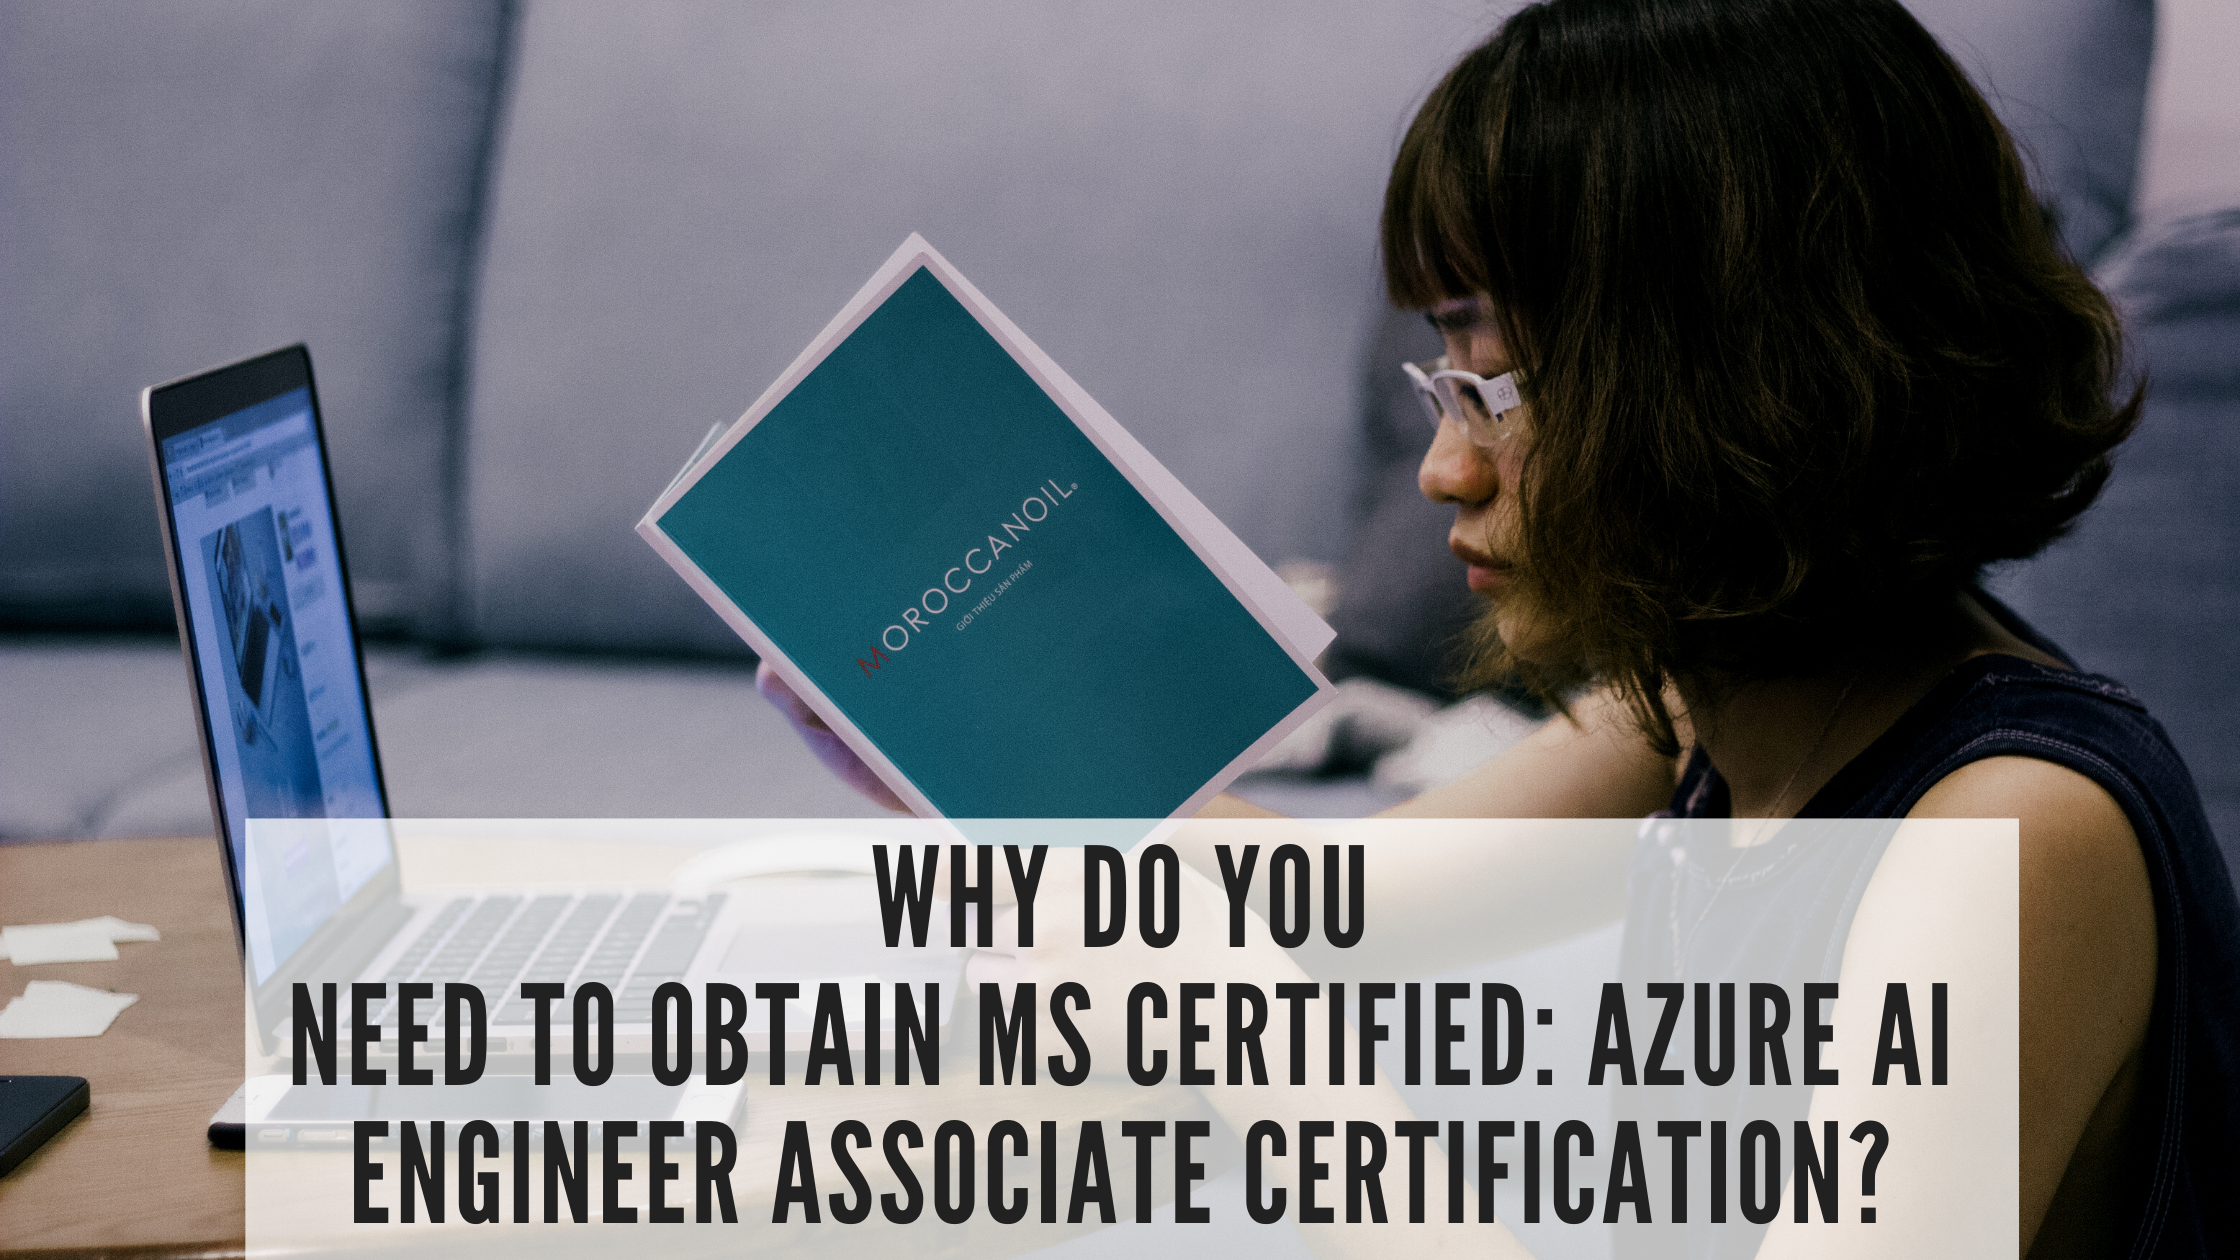 img-why-do-you-need-to-get-microsoft-certified-azure-ai-engineer-associate-certification.png